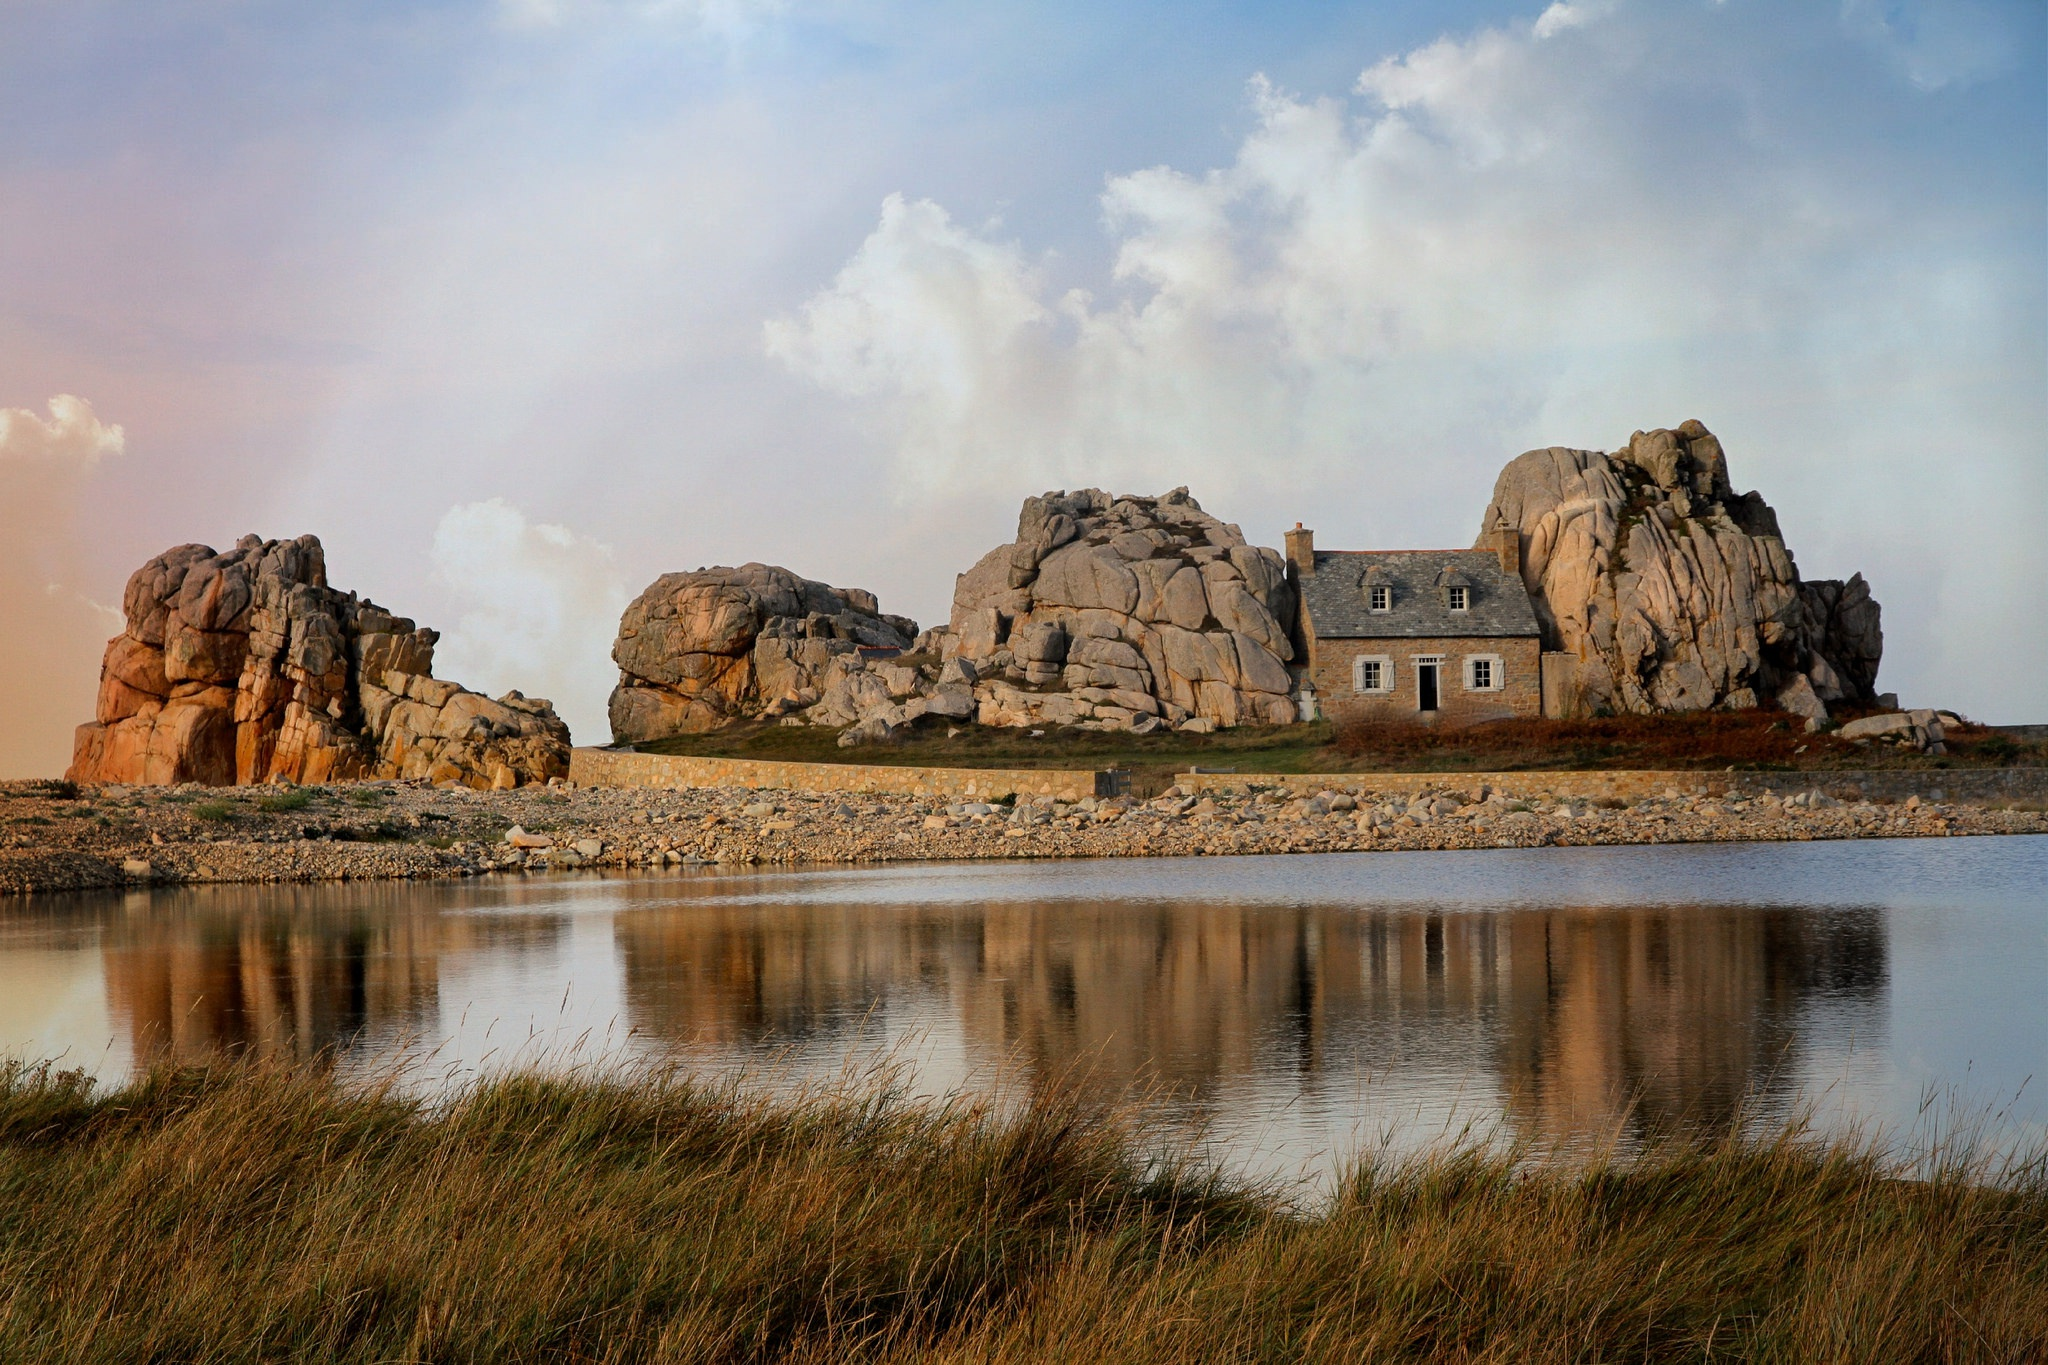 General 2048x1365 house building outdoors sky clouds water Plougrescant France Castel Meur